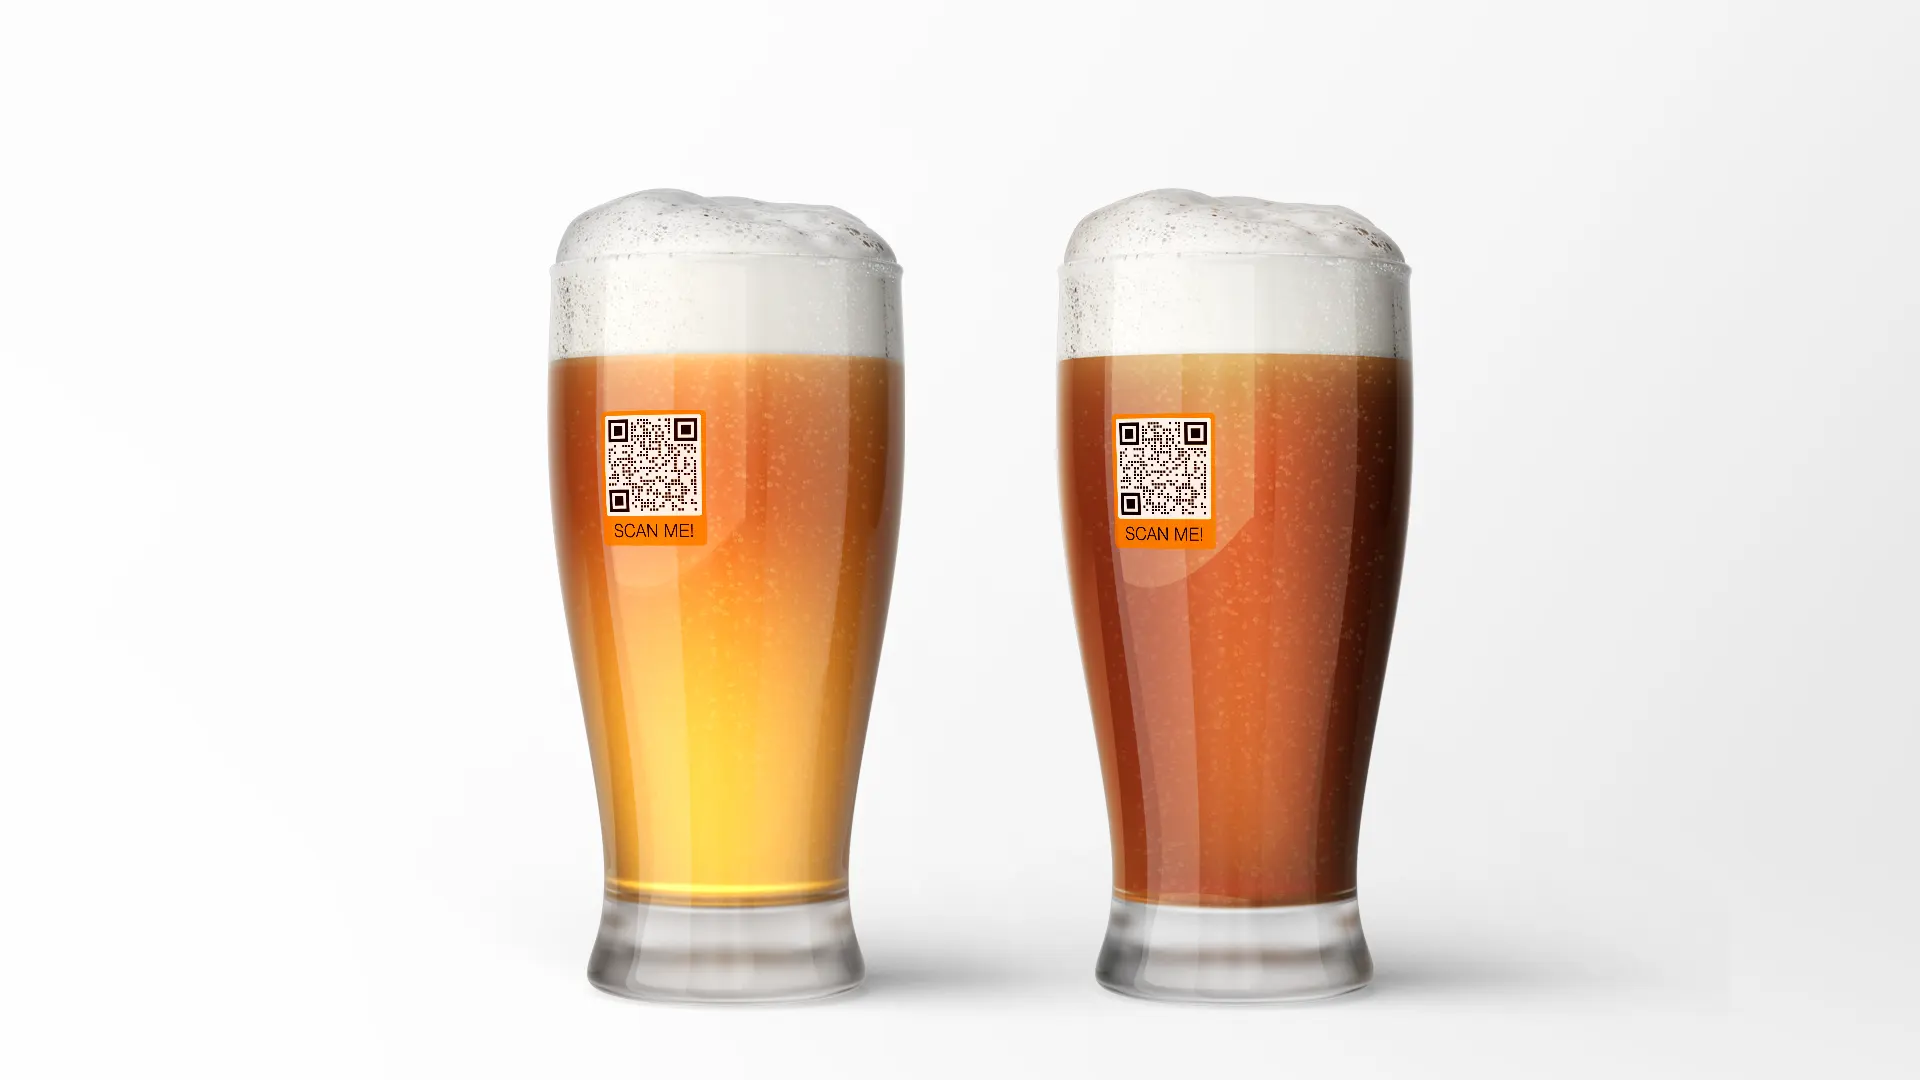 creative uses of qr codes beer glasses